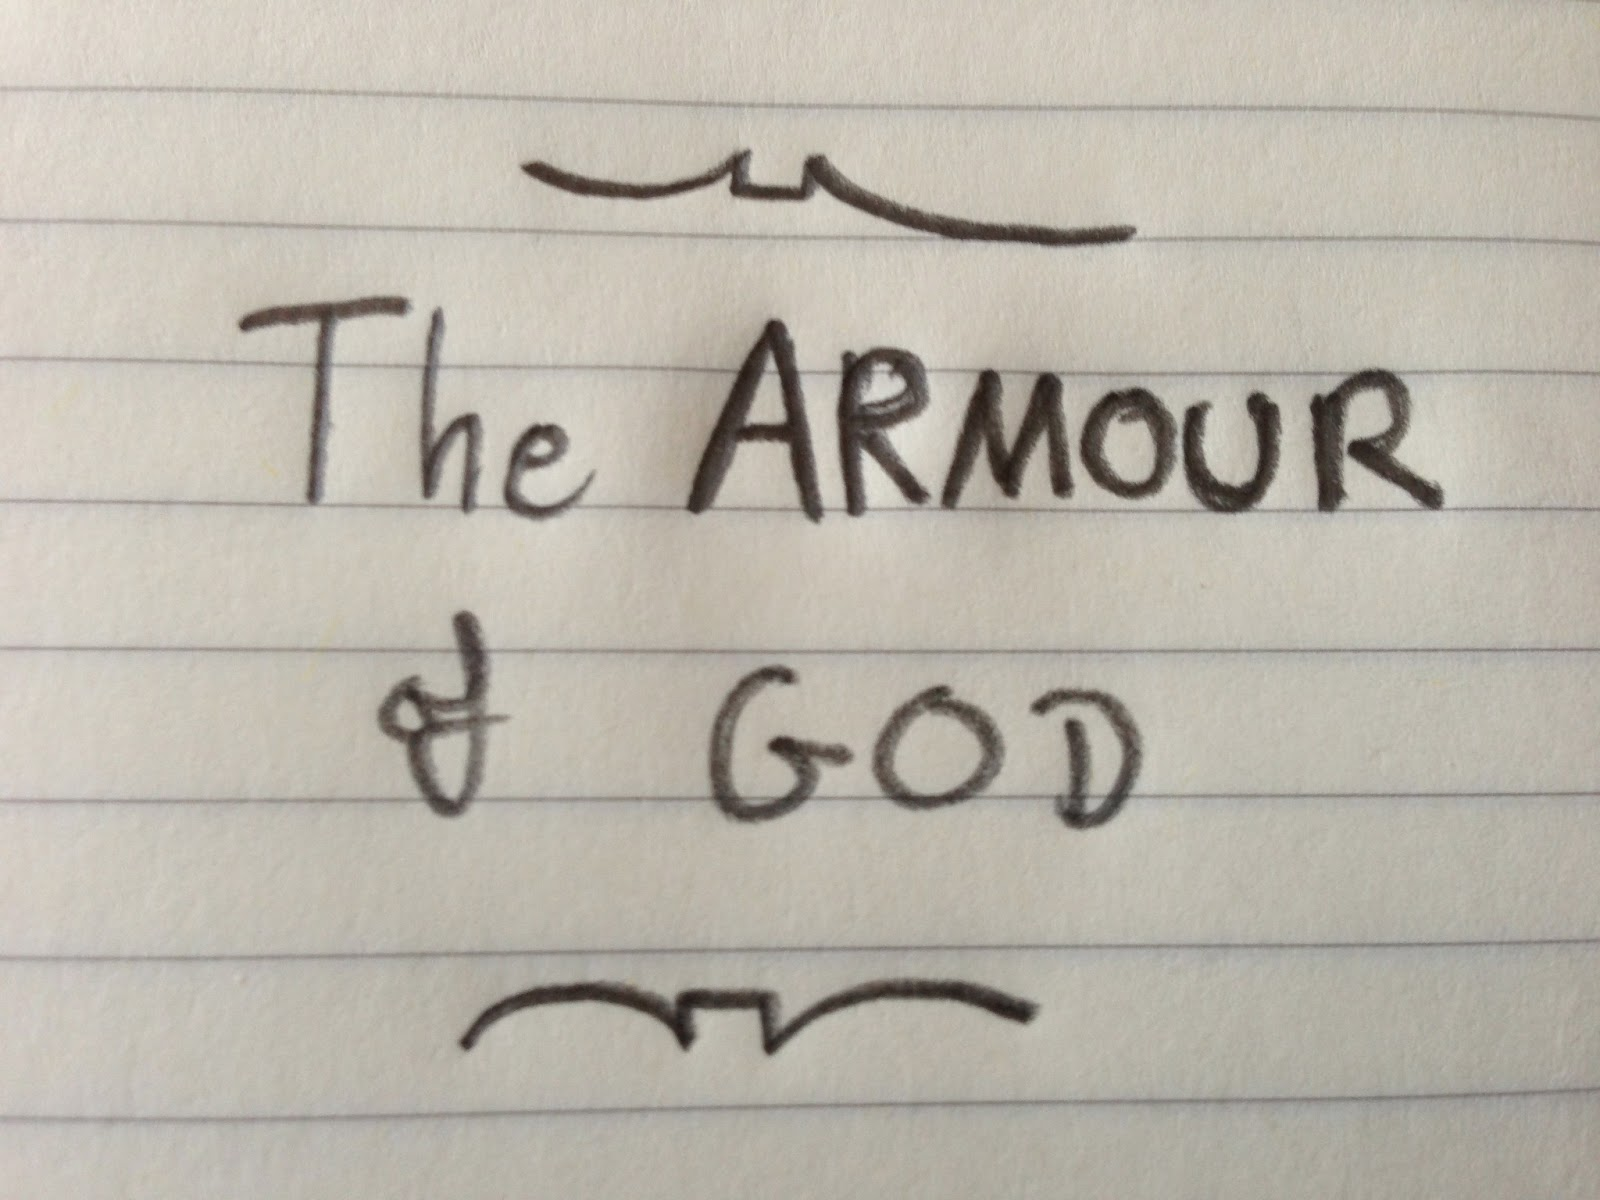 The armour of god thomas creedy to their understanding of the passage in question or the crucial issue of spiritual warfare this is considerably lengthy at just under 3000 words fandeluxe Gallery